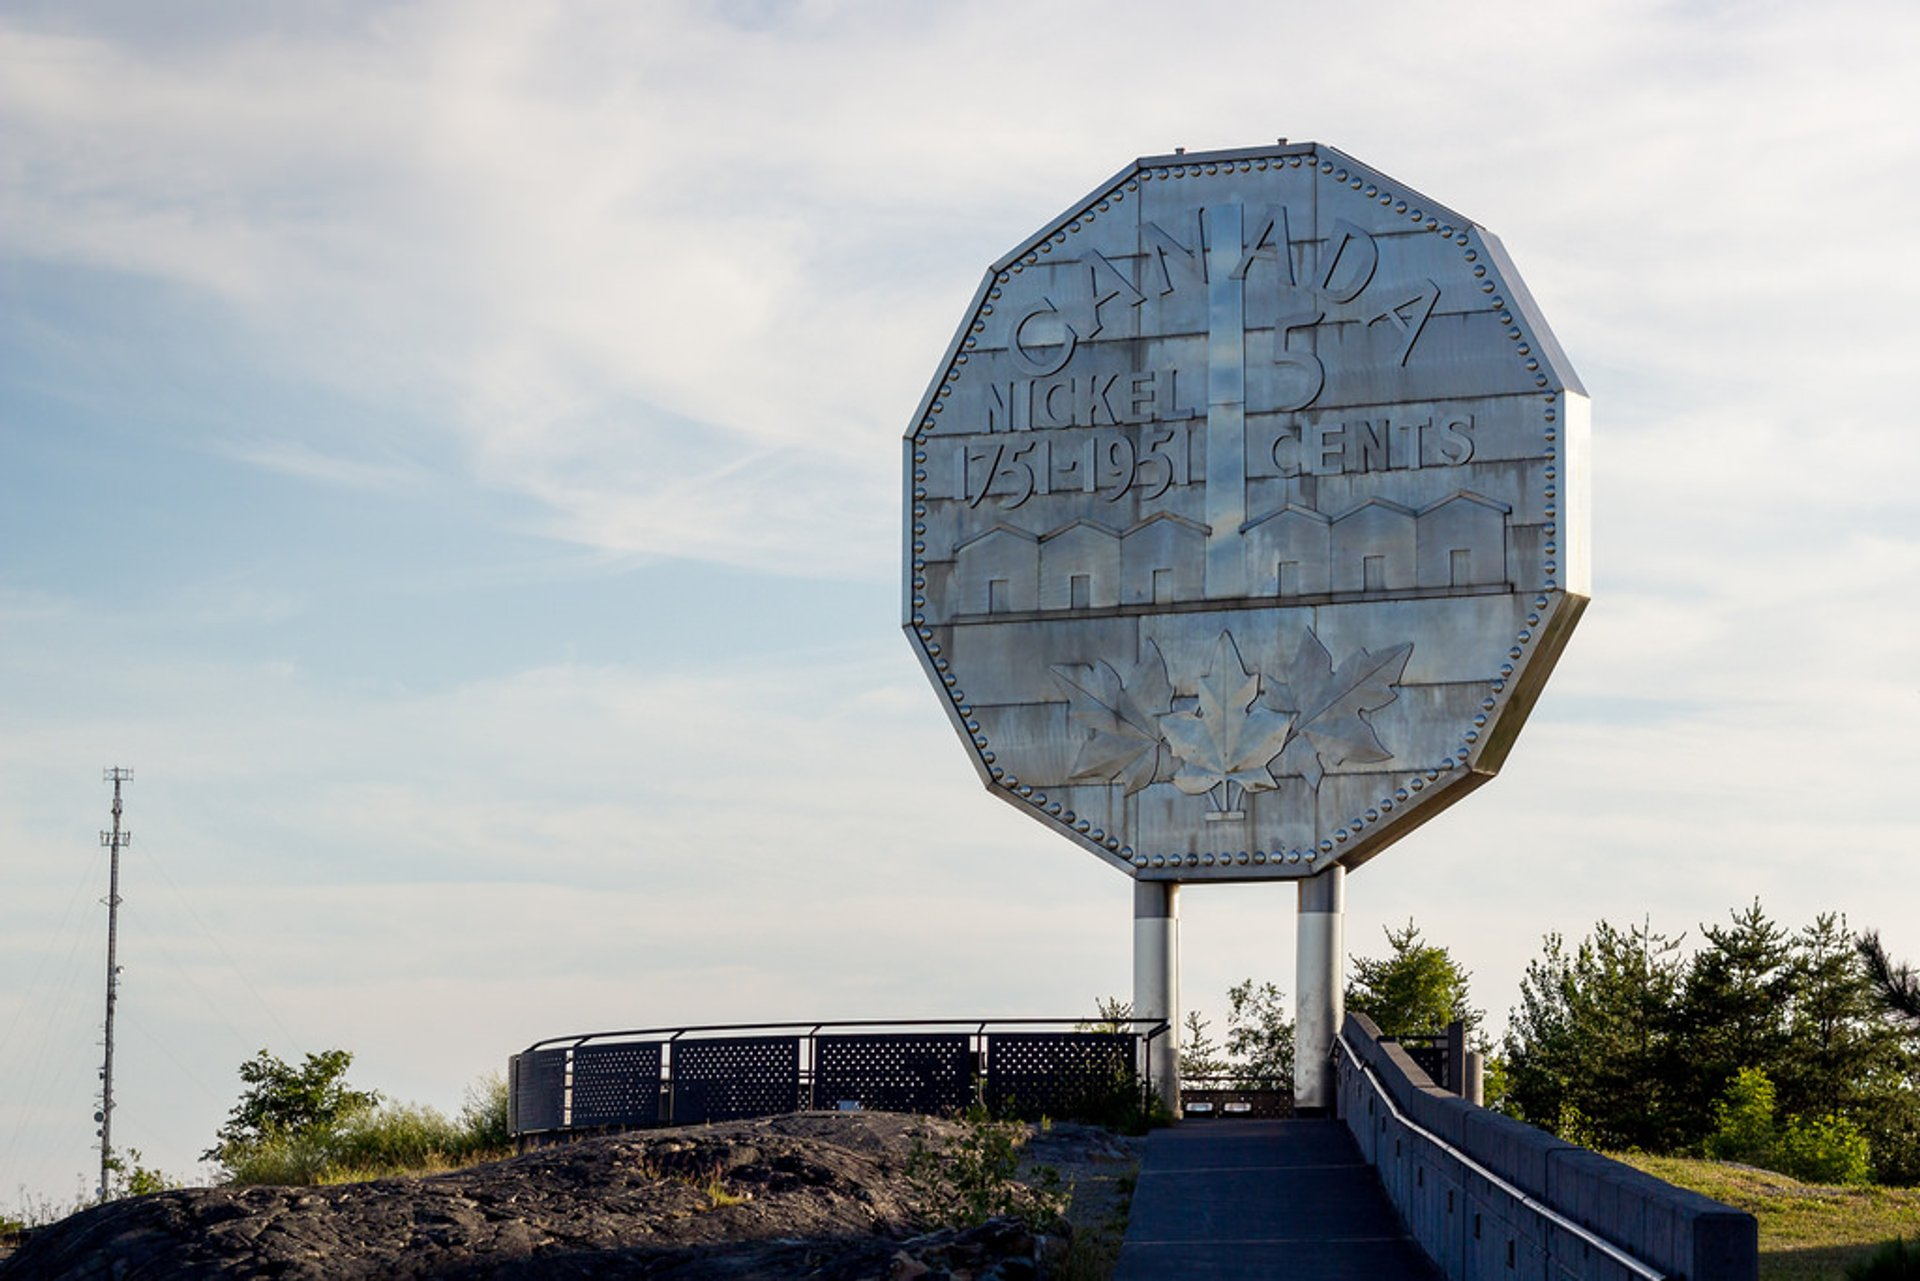 The Big Nickel in Ontario - Best Season 2020